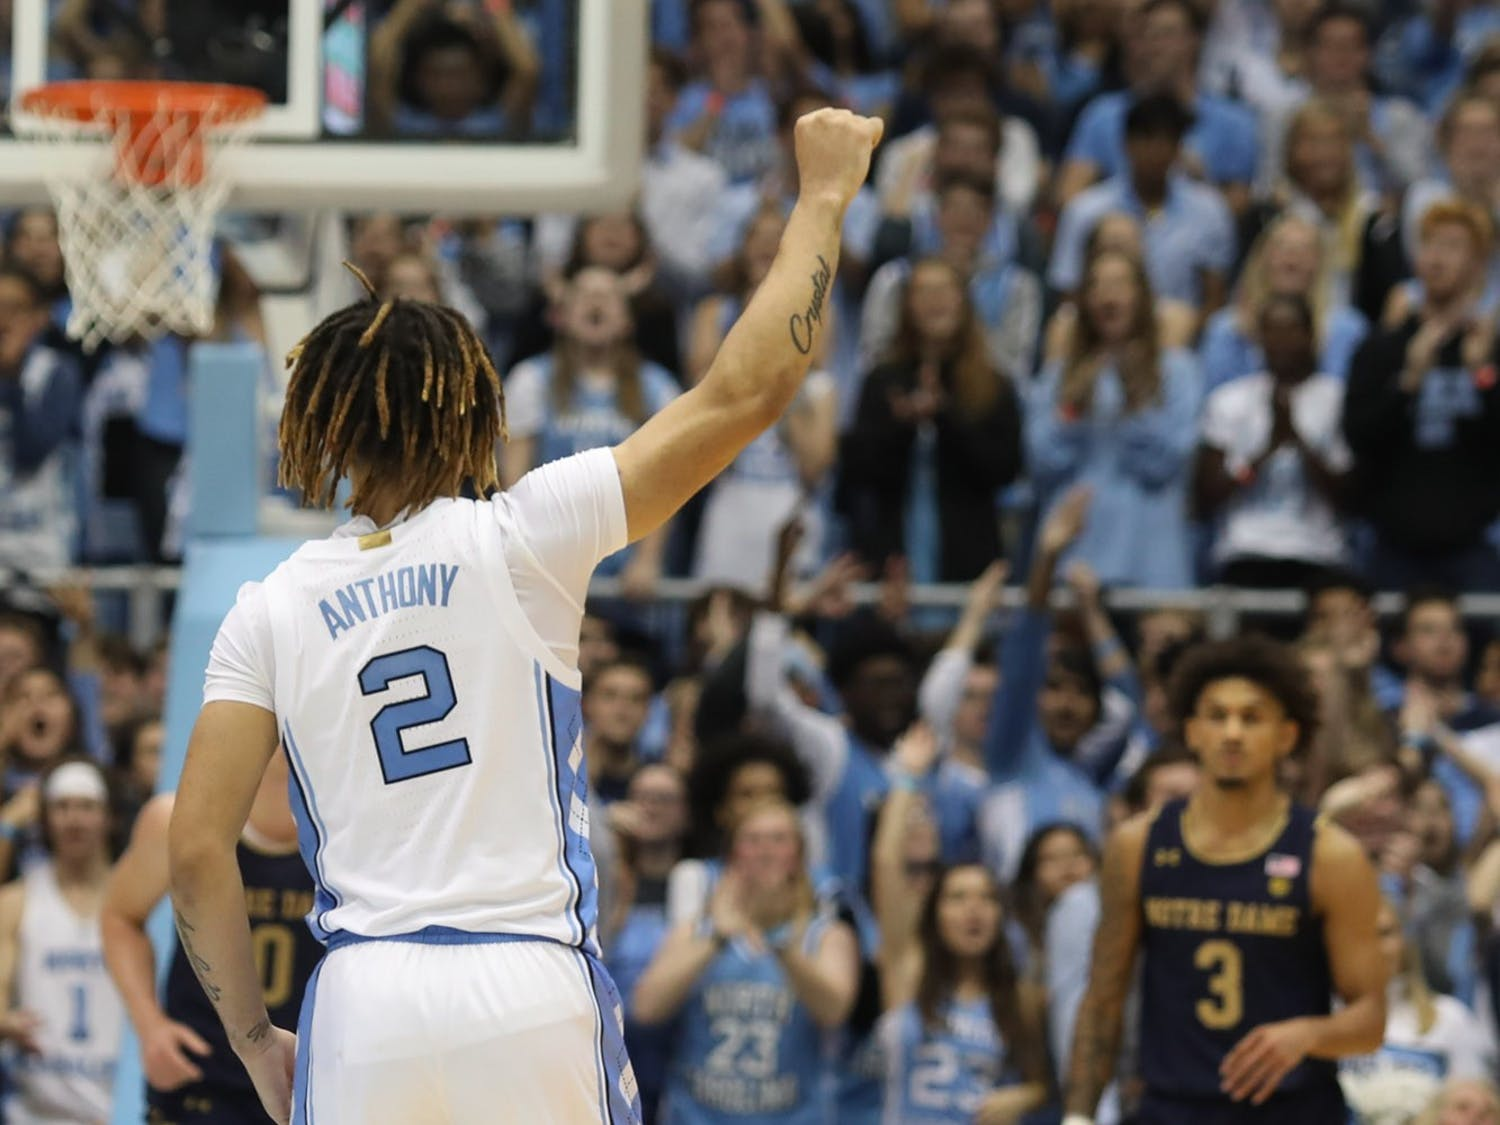 UNC guard Cole Anthony (2) celebrates after shooting a three-pointer on Nov. 6th, 2019 at the Dean E. Smith Center. UNC beat Notre Dame 76-65. Anthony scored 34 points, the most points in any player's first game in Tar Heel history.